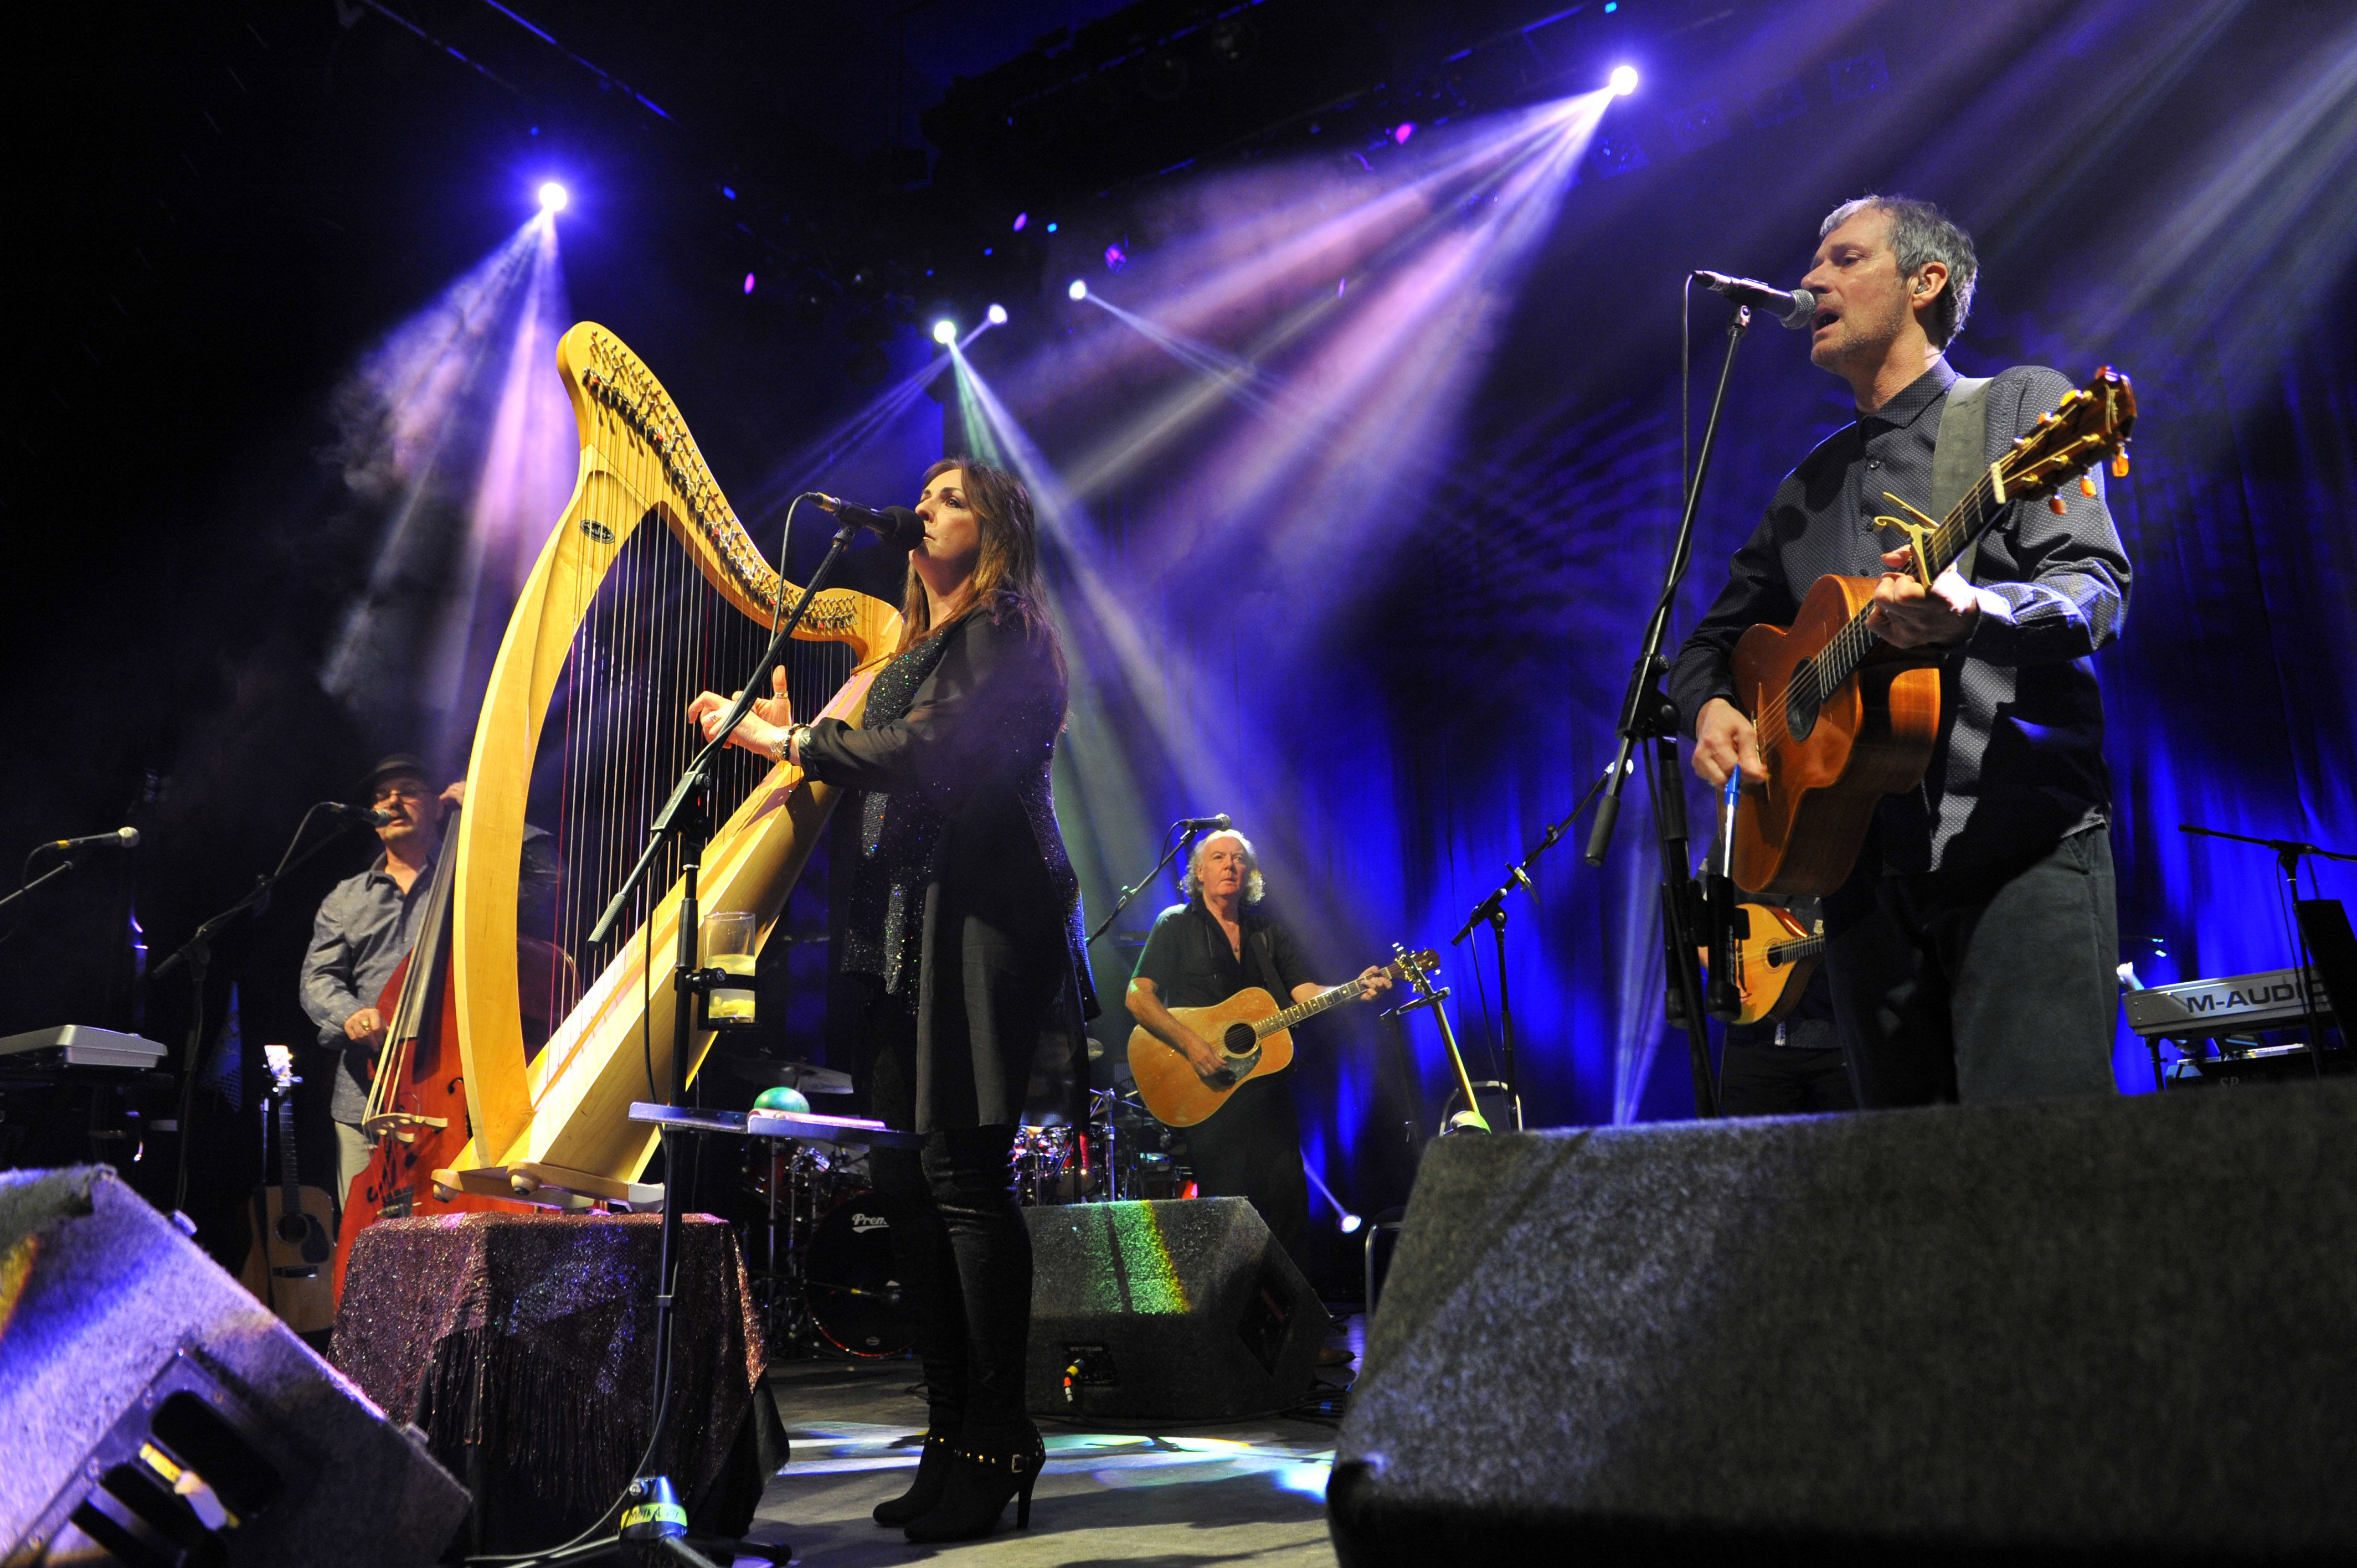 Clannad Perform At Shepherds Bush Empire In London